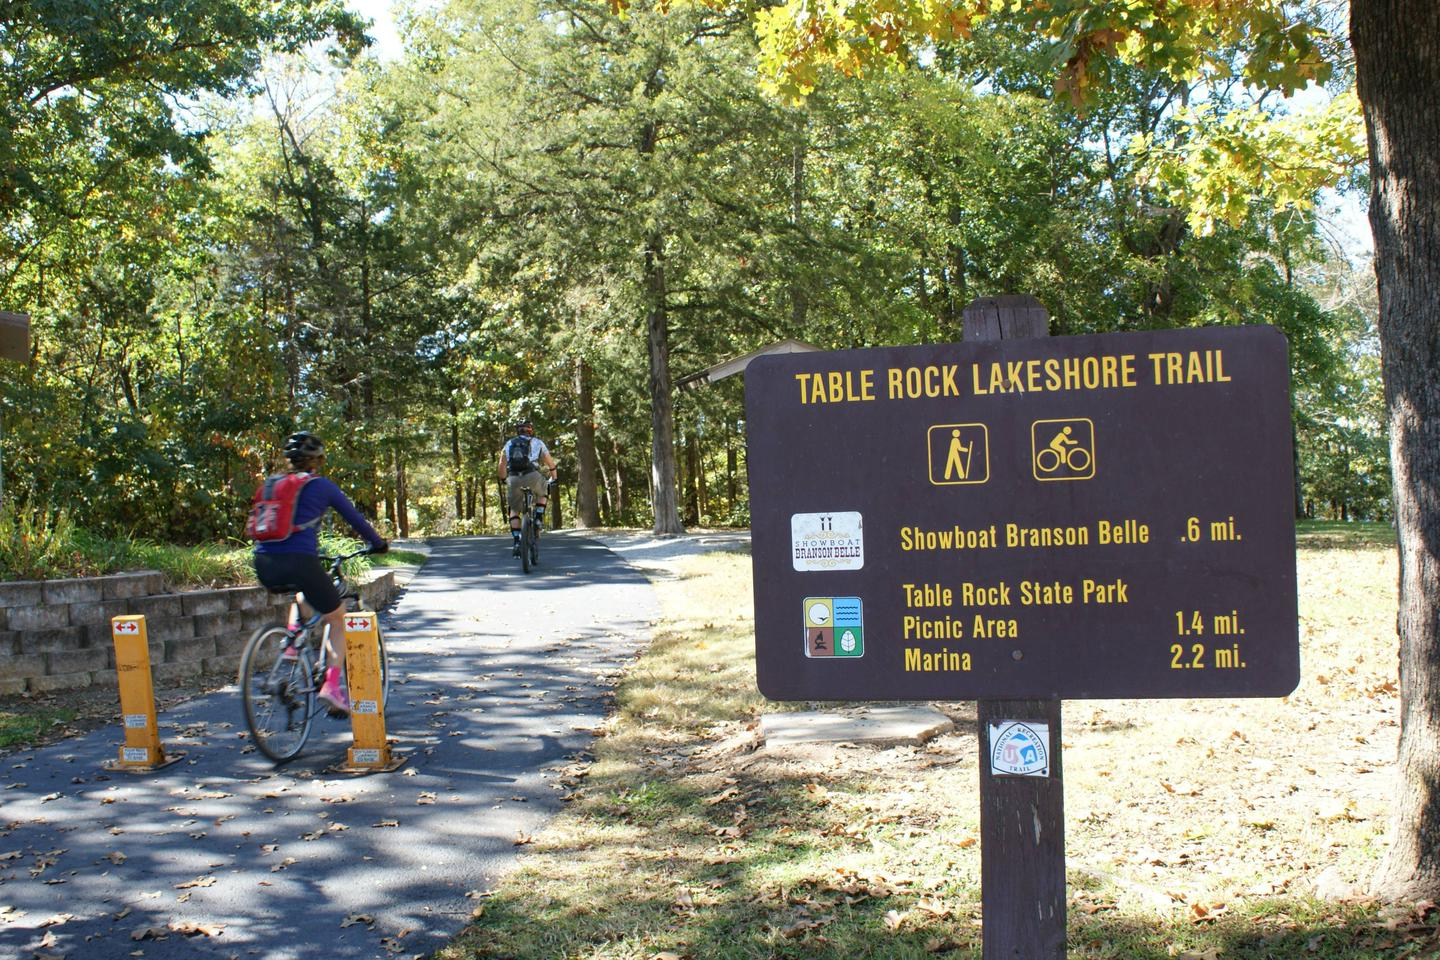 TRLakeshore Trail located at 4600 St. Hwy 165, Branson MO